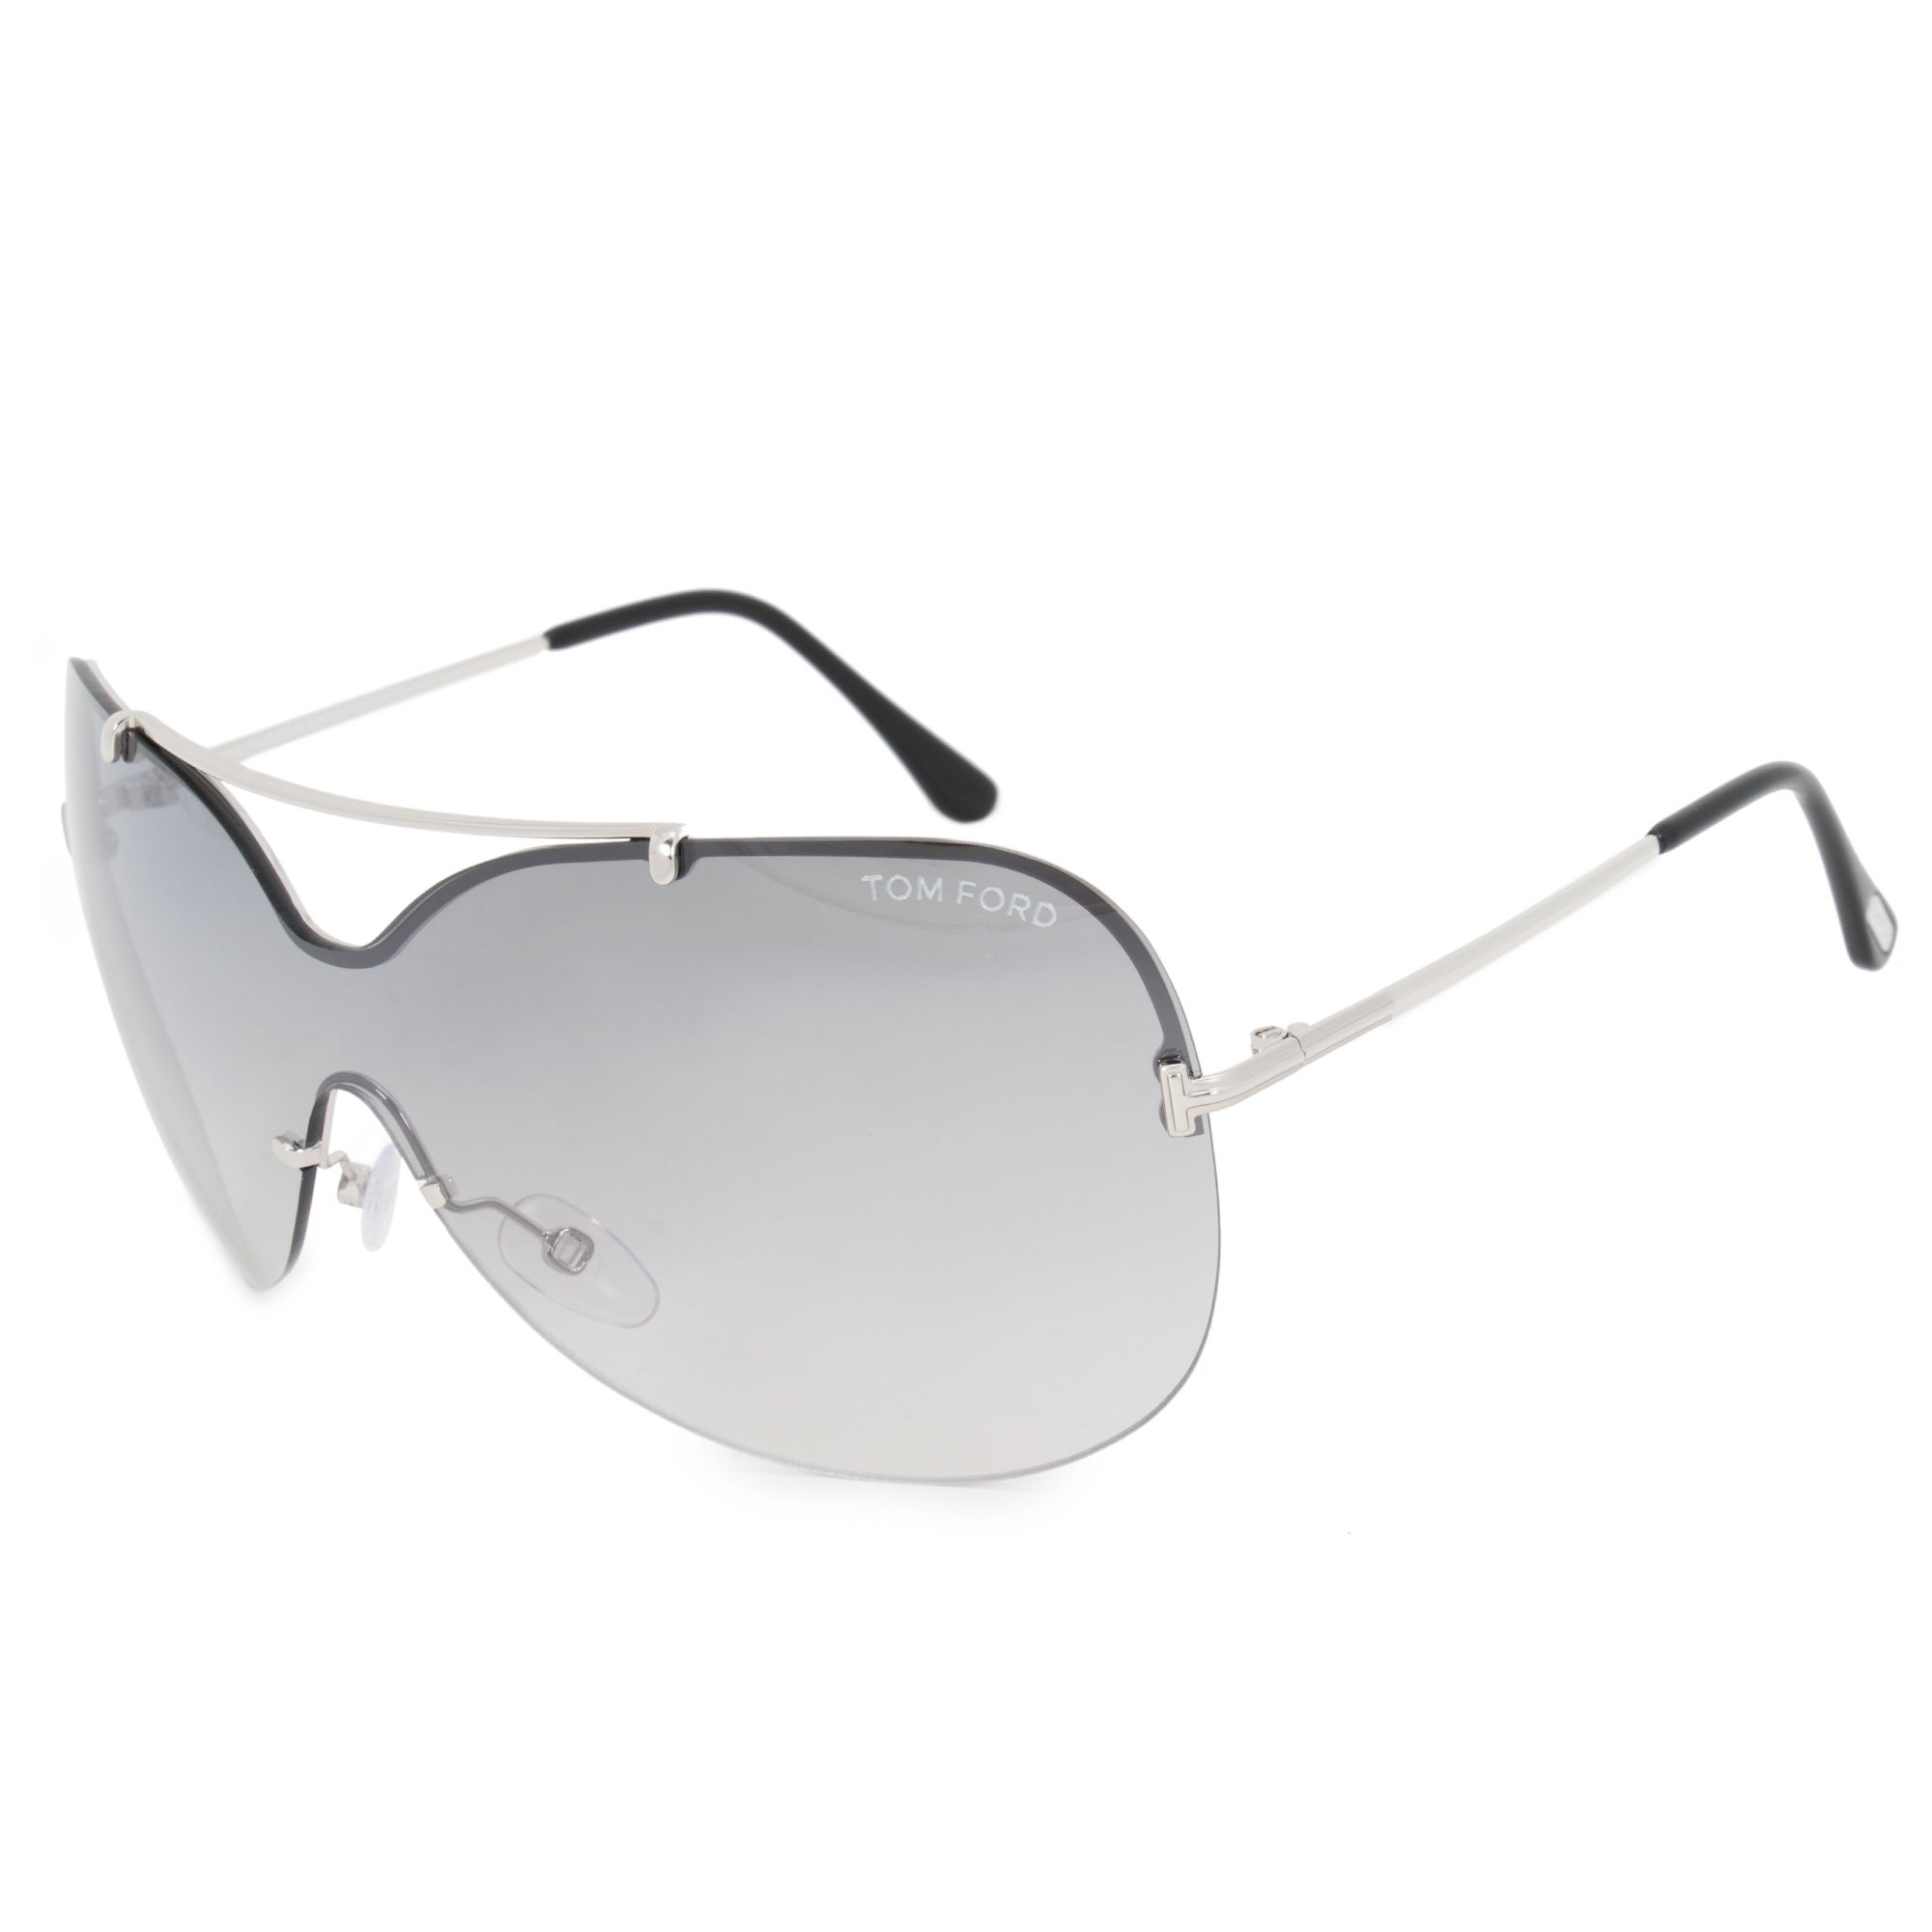 94edbb812f Shop Tom Ford Ondria Shield Sunglasses FT0519 16C 00 - On Sale - Free  Shipping Today - Overstock - 25895120